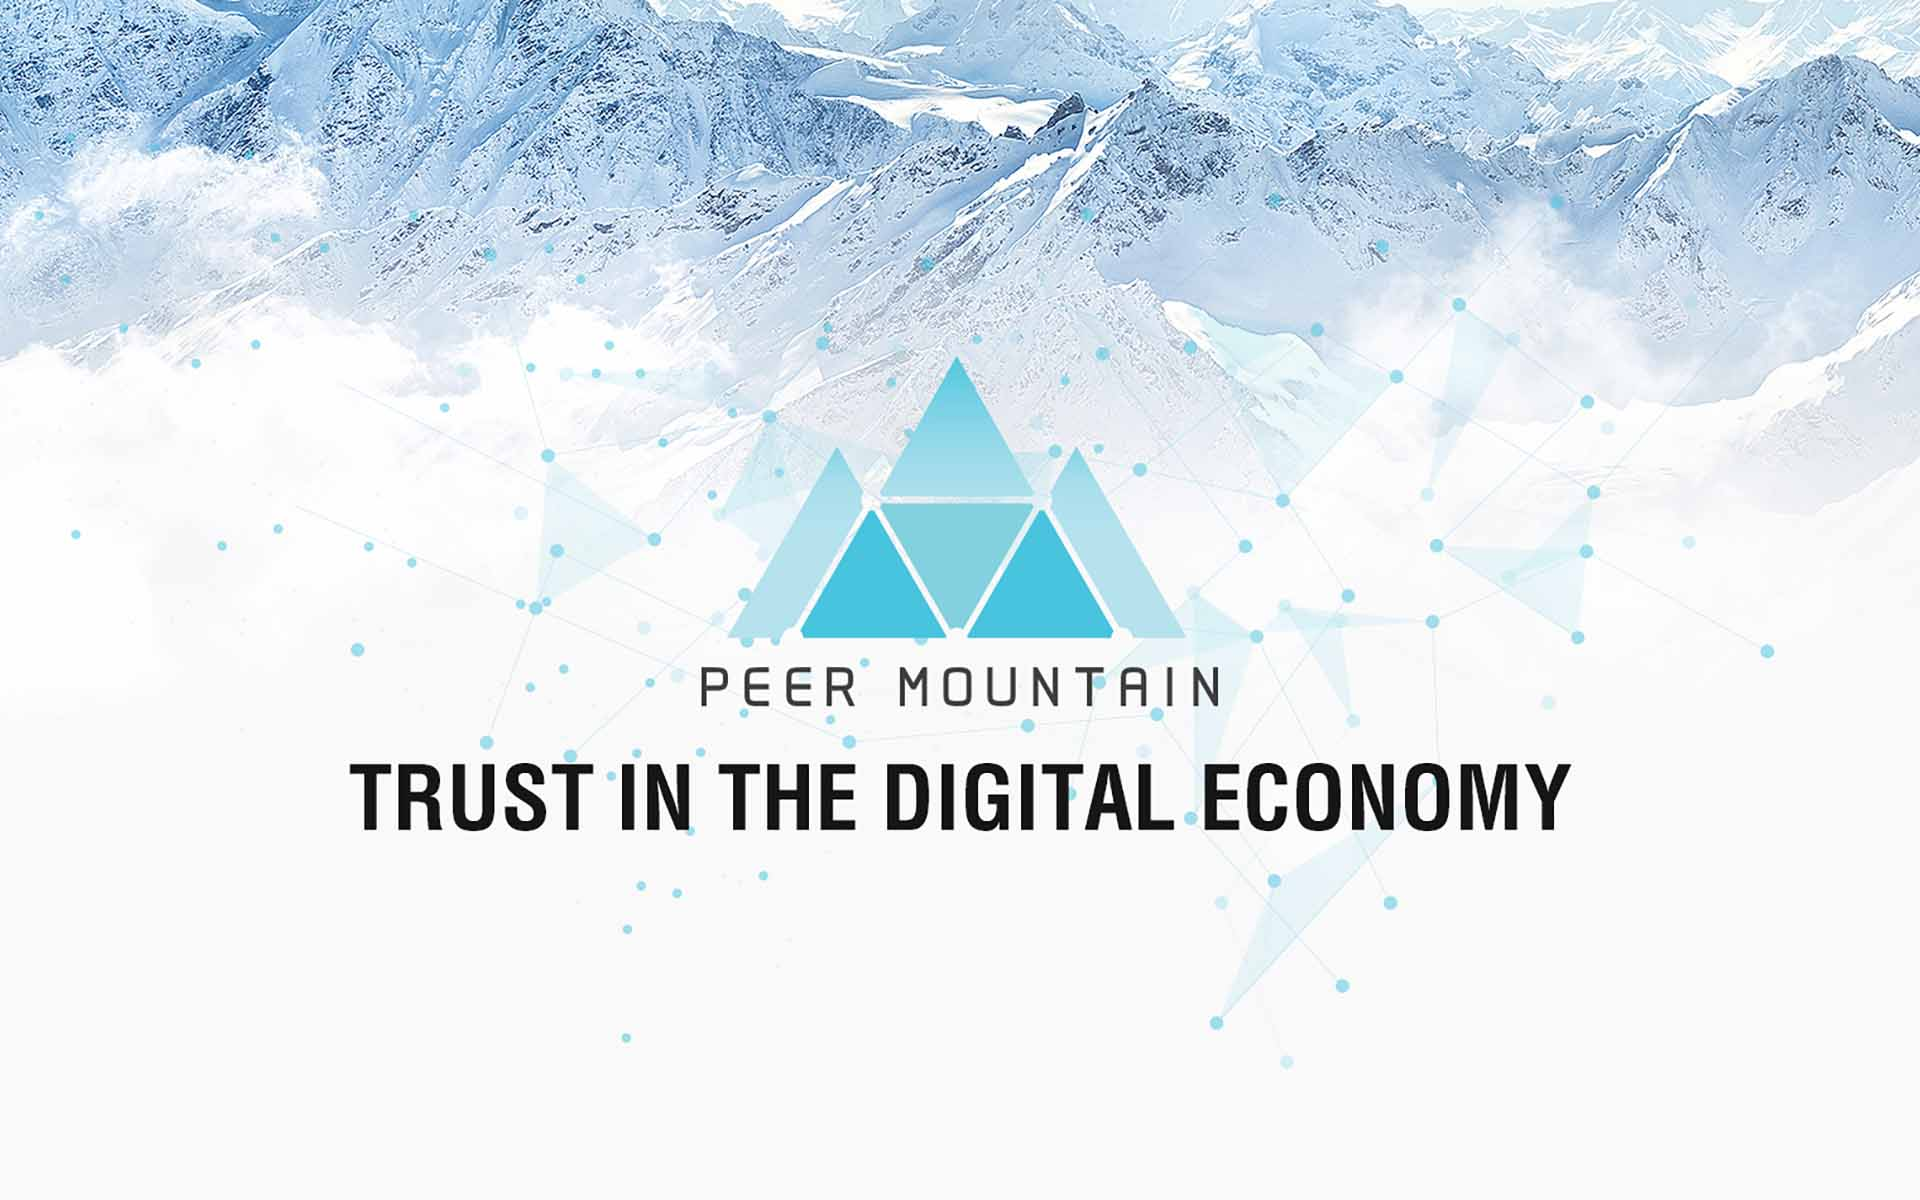 Peer Mountain Announces Partnership with TokenMarket for Token Generation Event